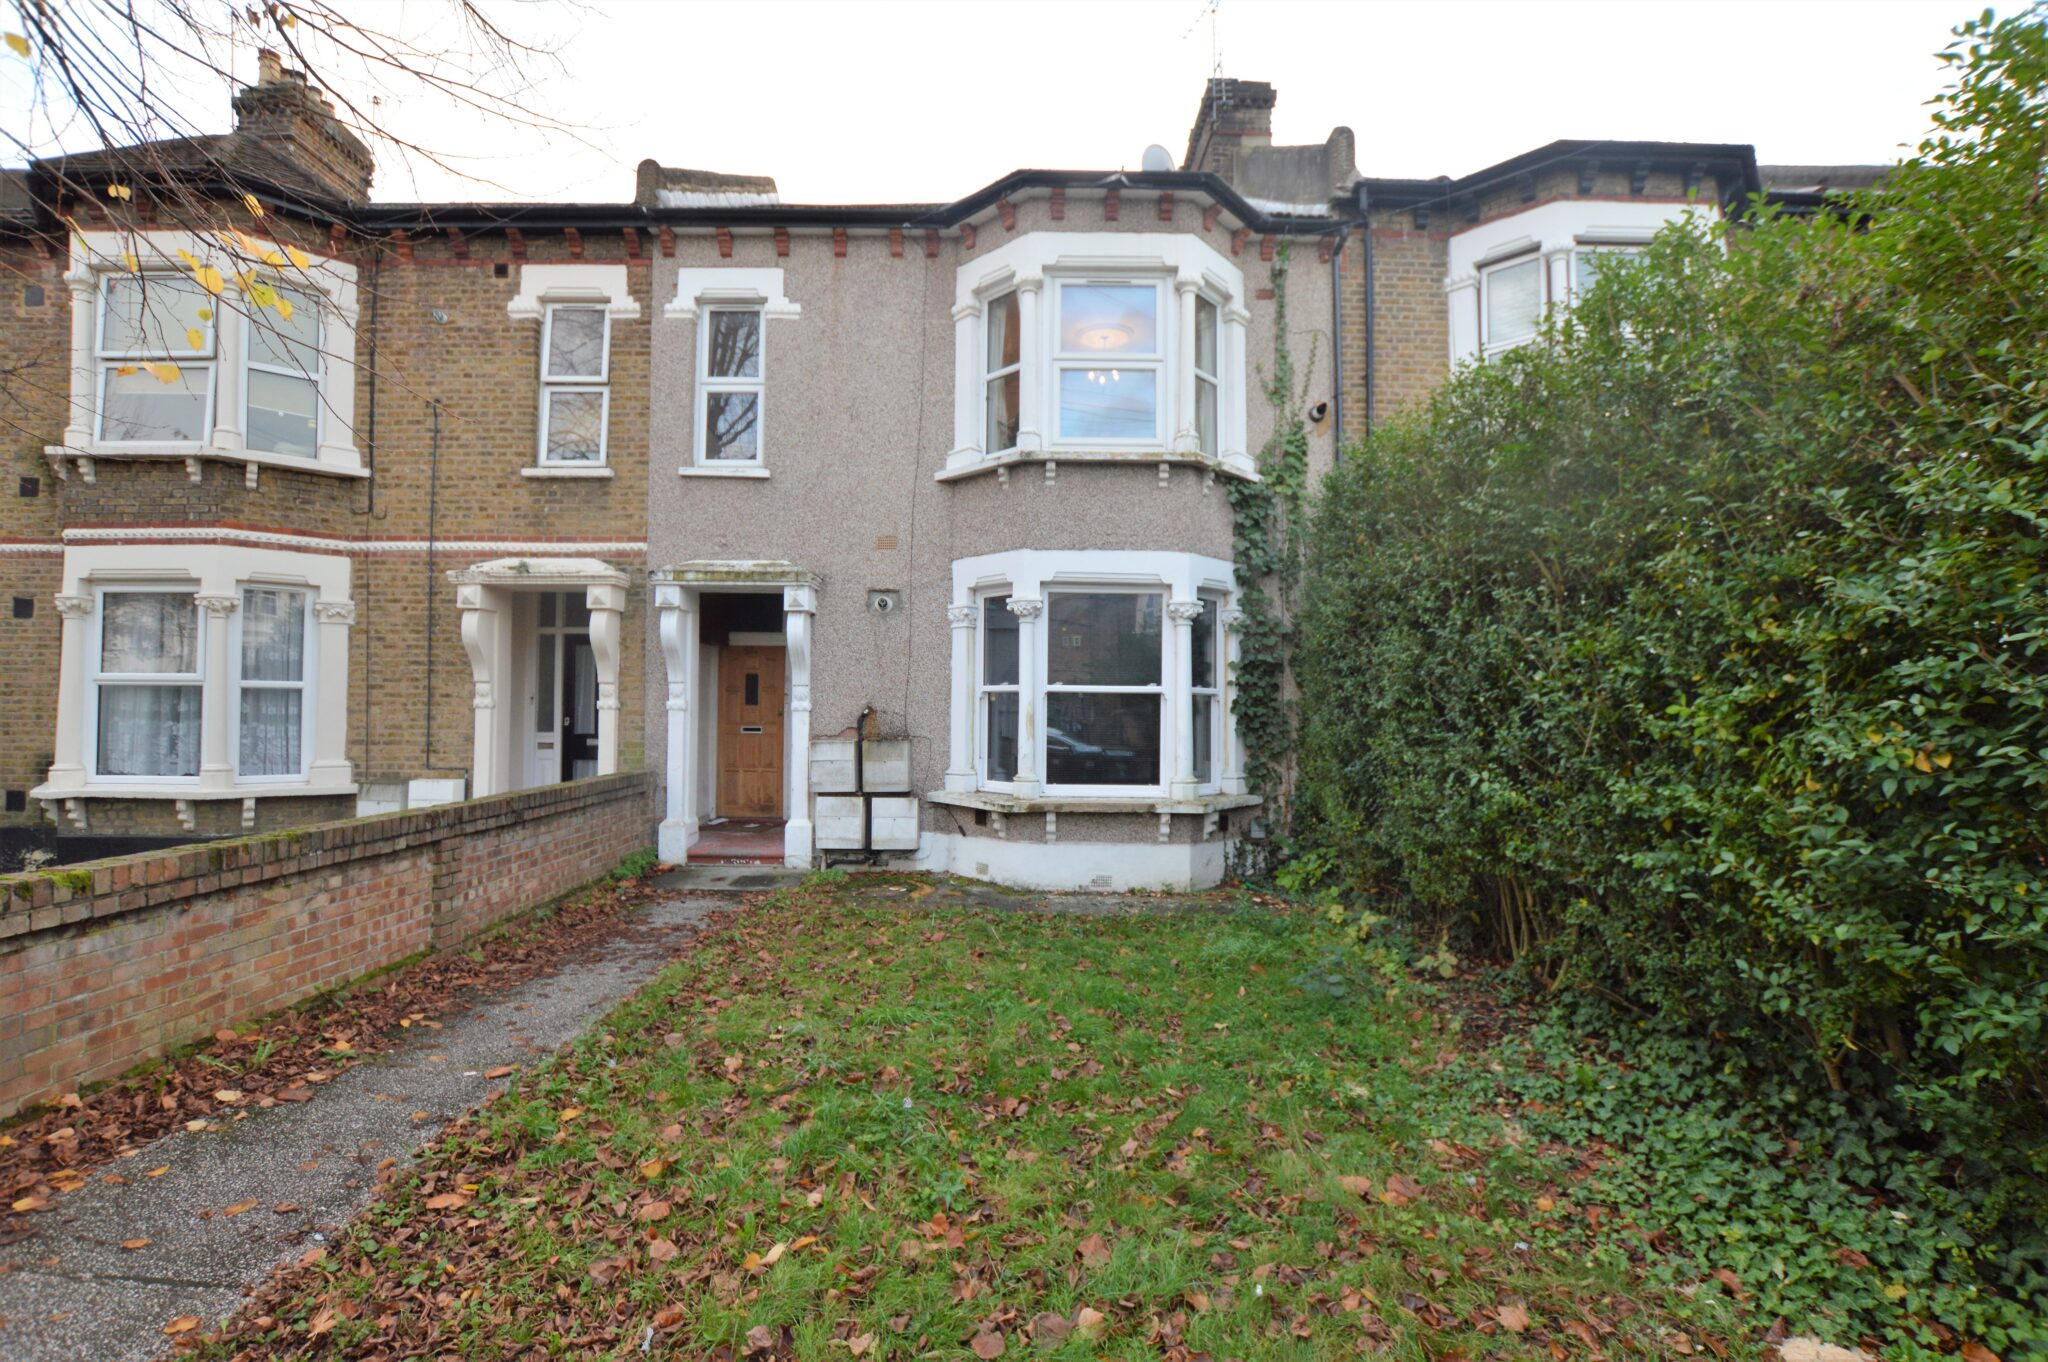 Bulwer Road, Leytonstone, London, E11 1DE